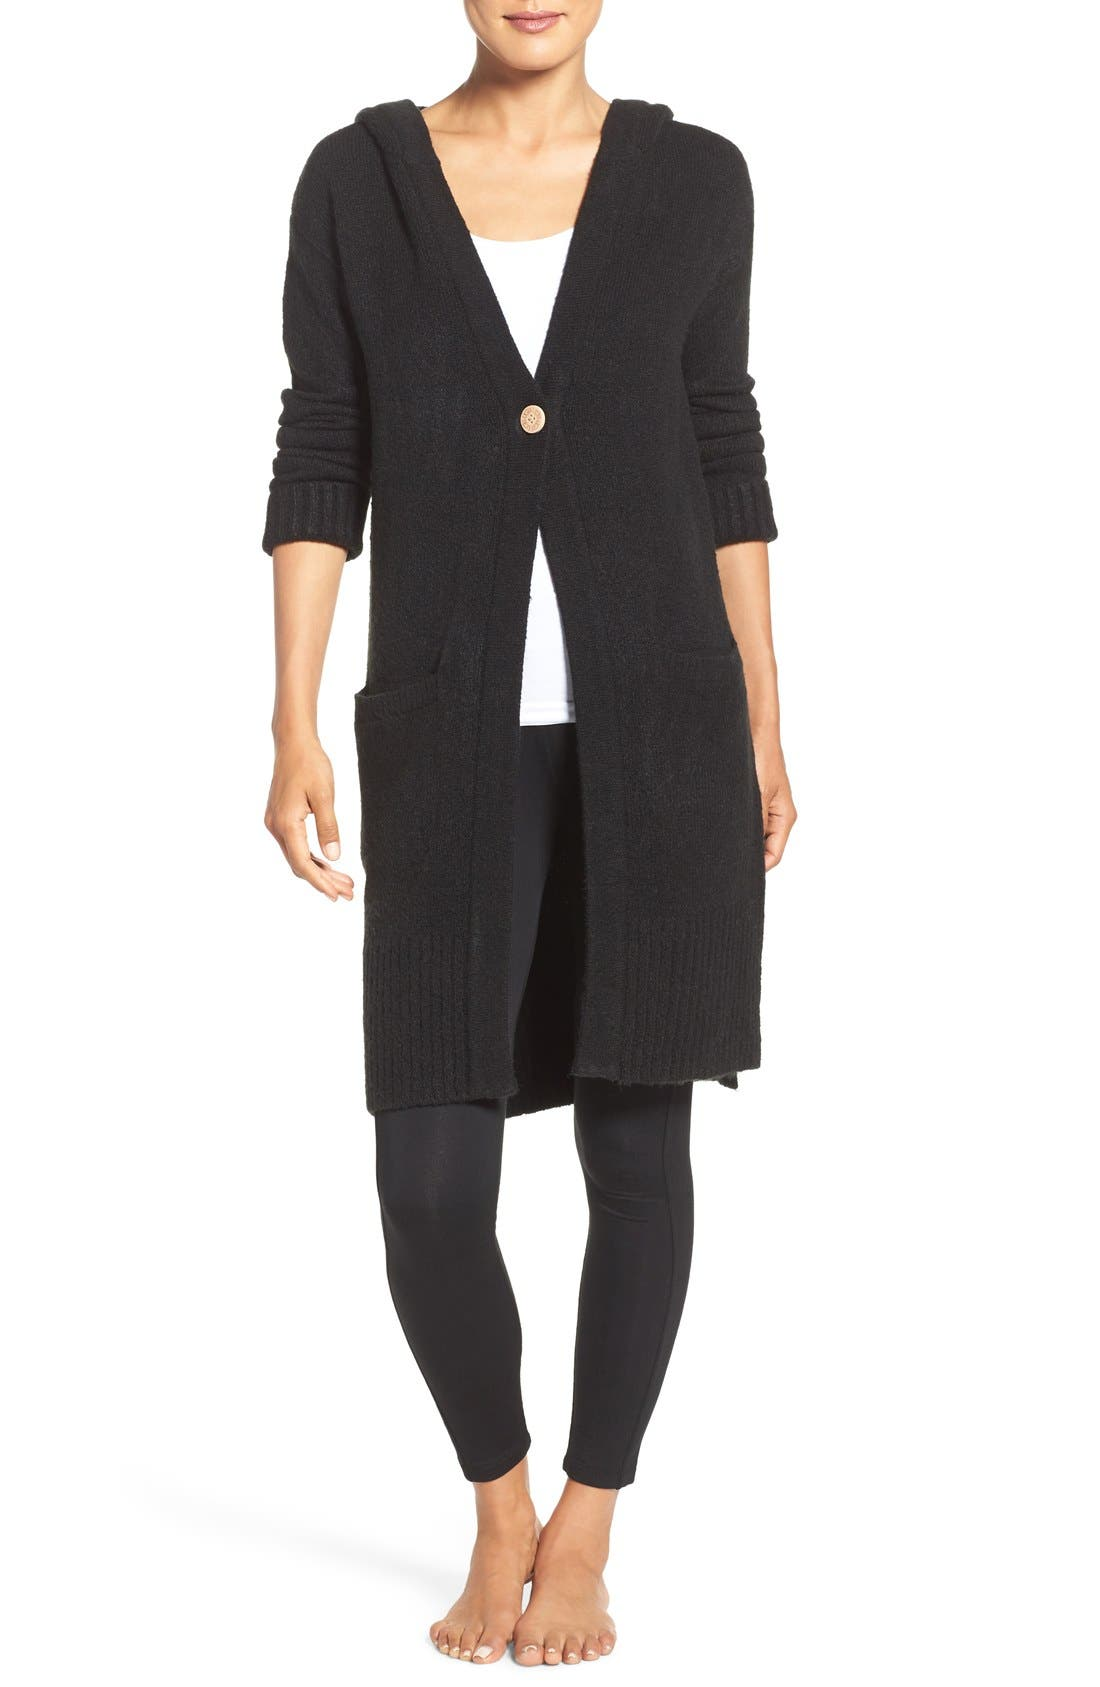 Alternate Image 1 Selected - UGG® 'Judith' Hooded Knit Cardigan